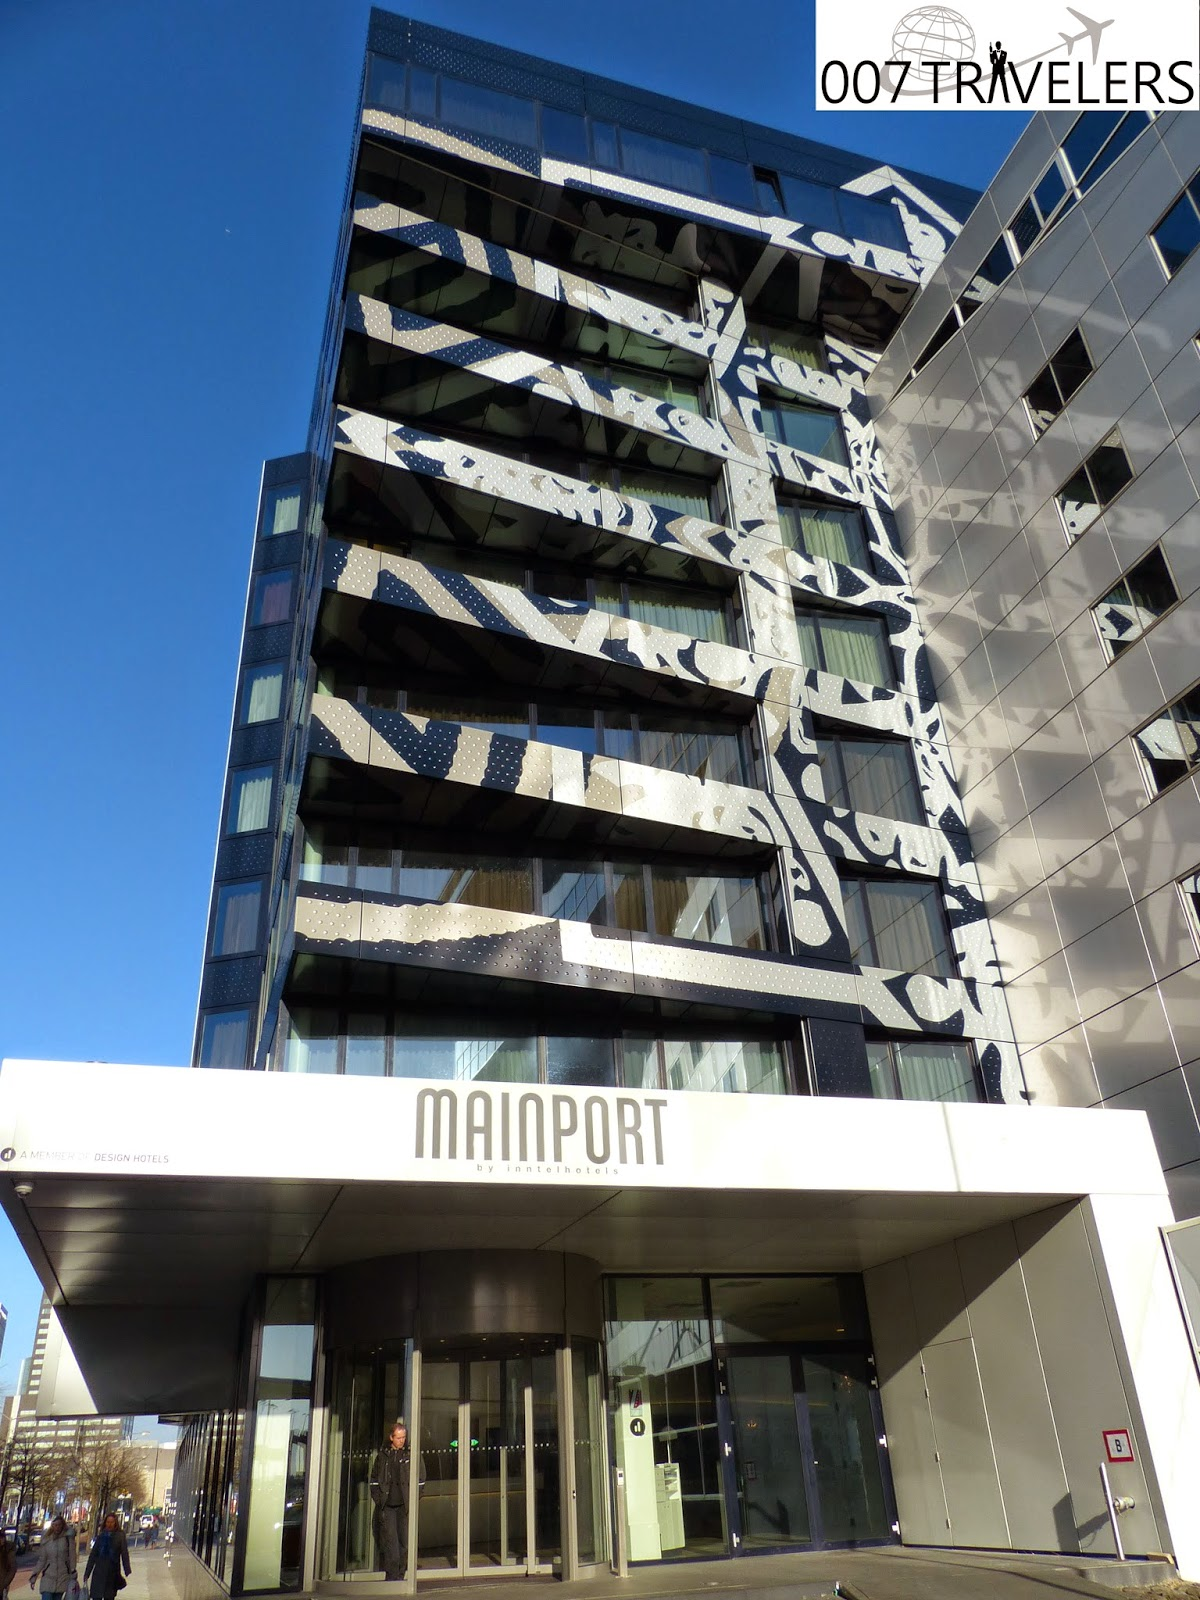 007 travelers 007 theme hotel mainport by inntel hotels for Mainport design hotel leuvehaven 77 3011 ea rotterdam